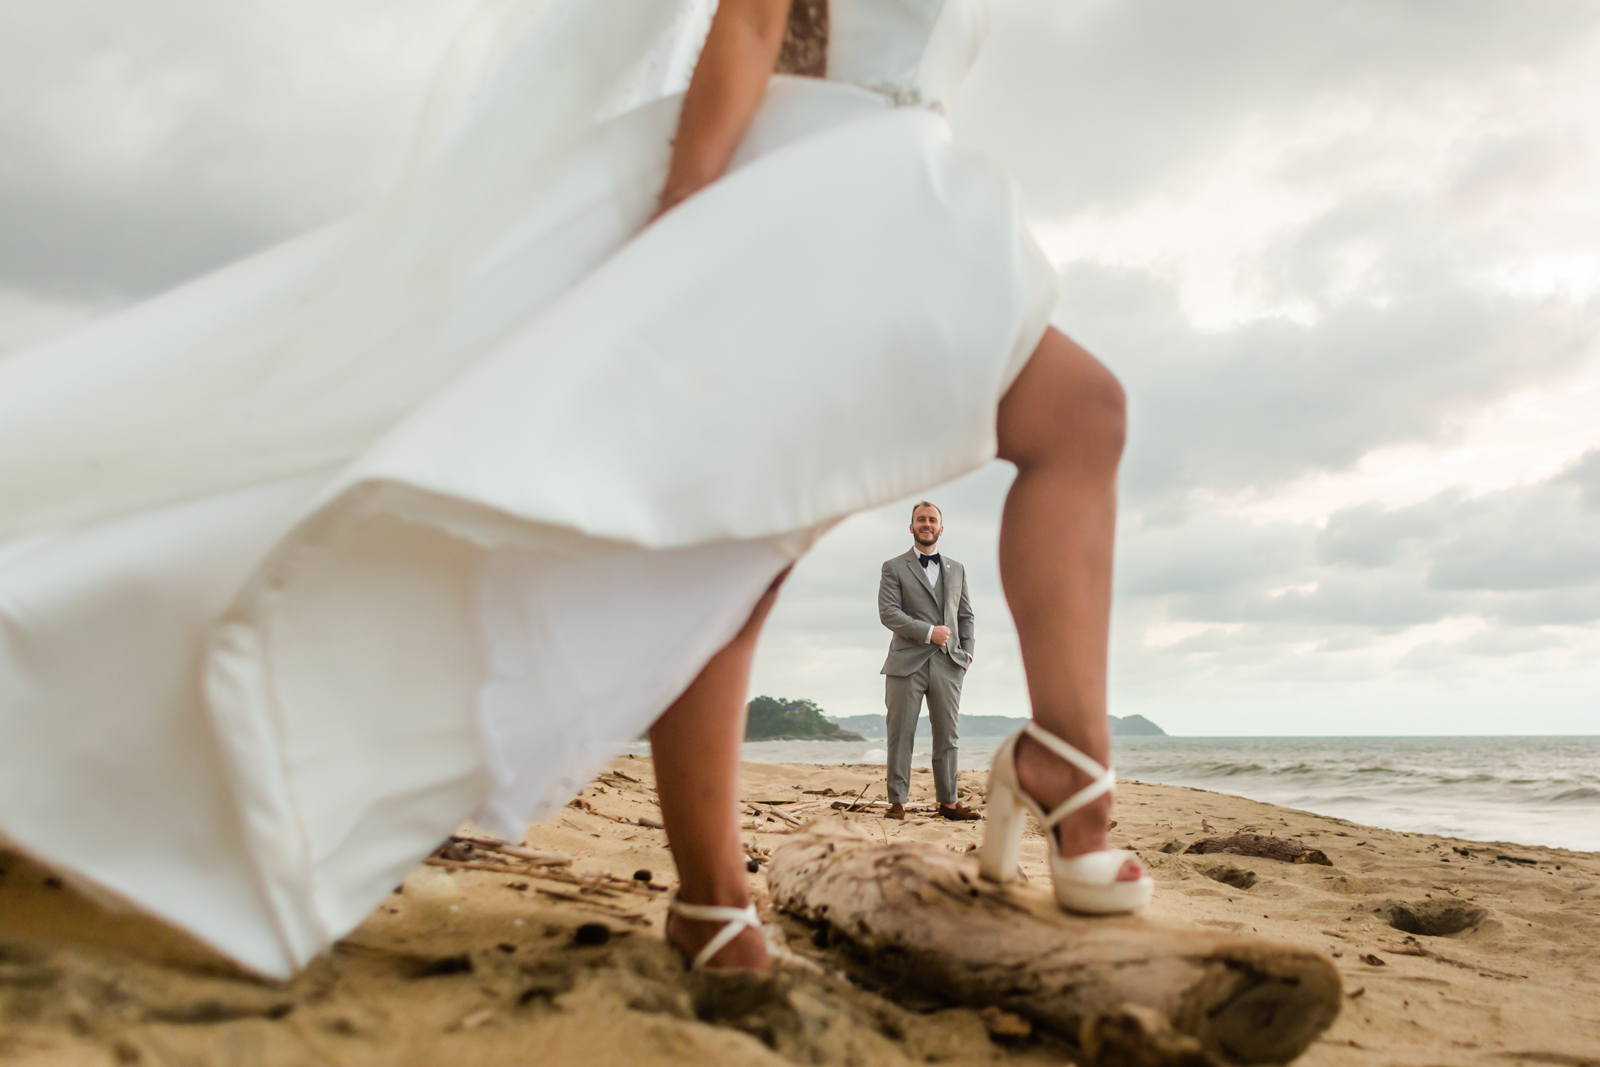 wedding bride and groom groom between the legs, wedding white dress, beach and ocean